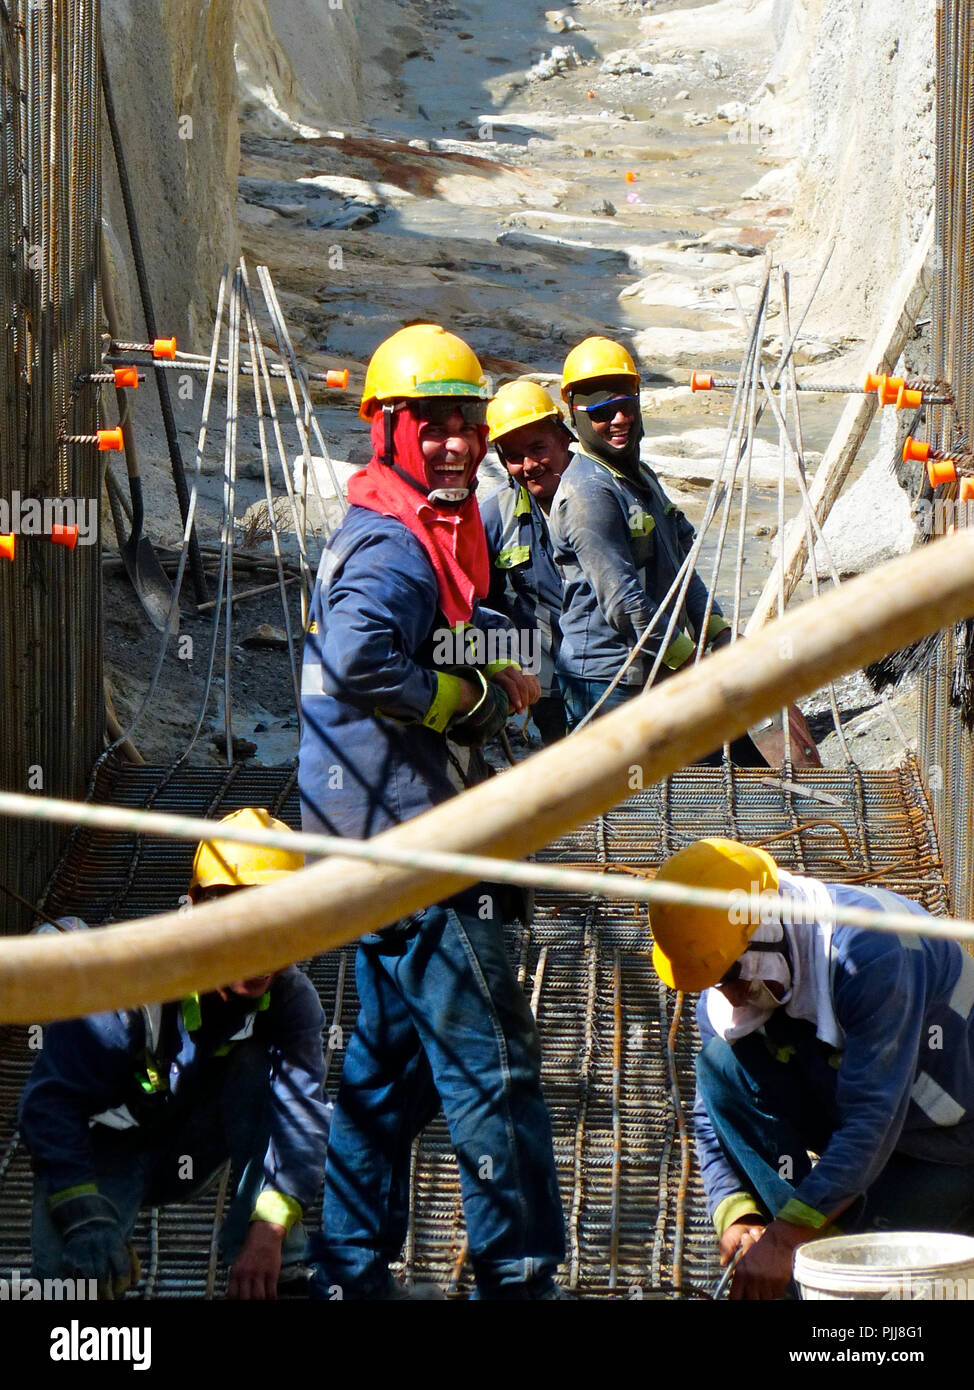 a group of five welders building the mesh for a concrete reinforcement in a hydropower Project wearing safety helmets and smiling - Stock Image